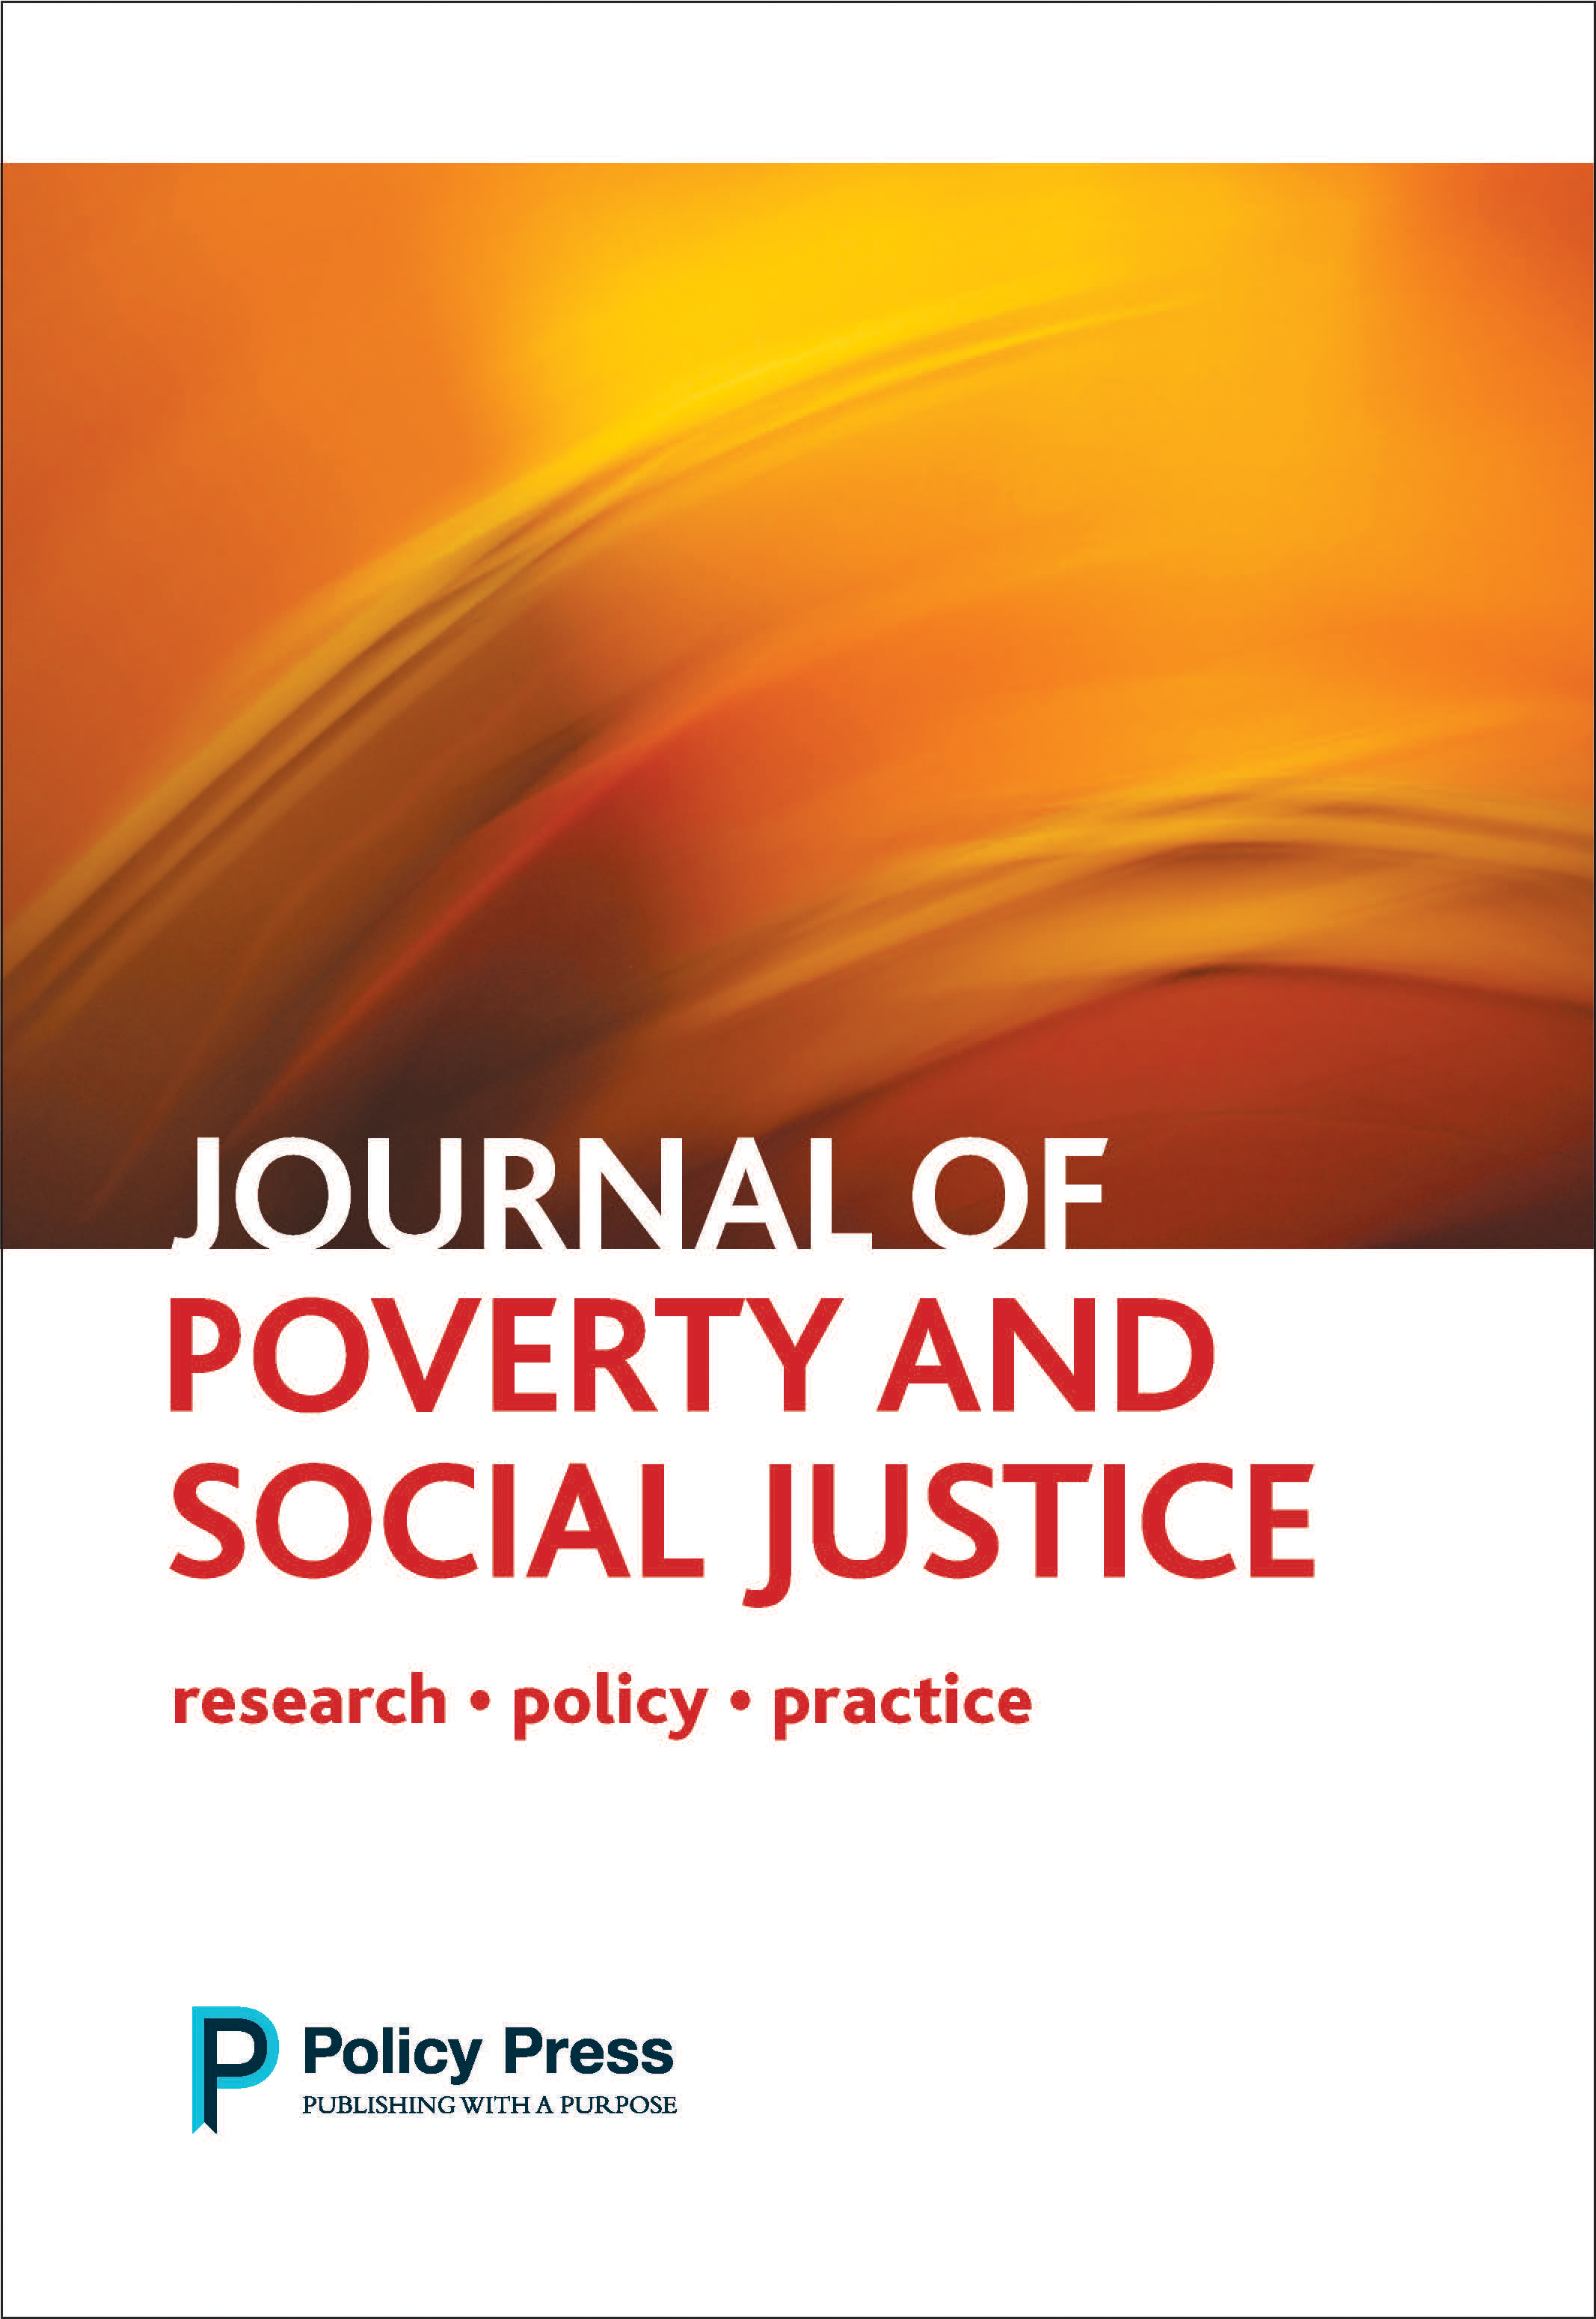 Journal of Poverty and Social Justice cover